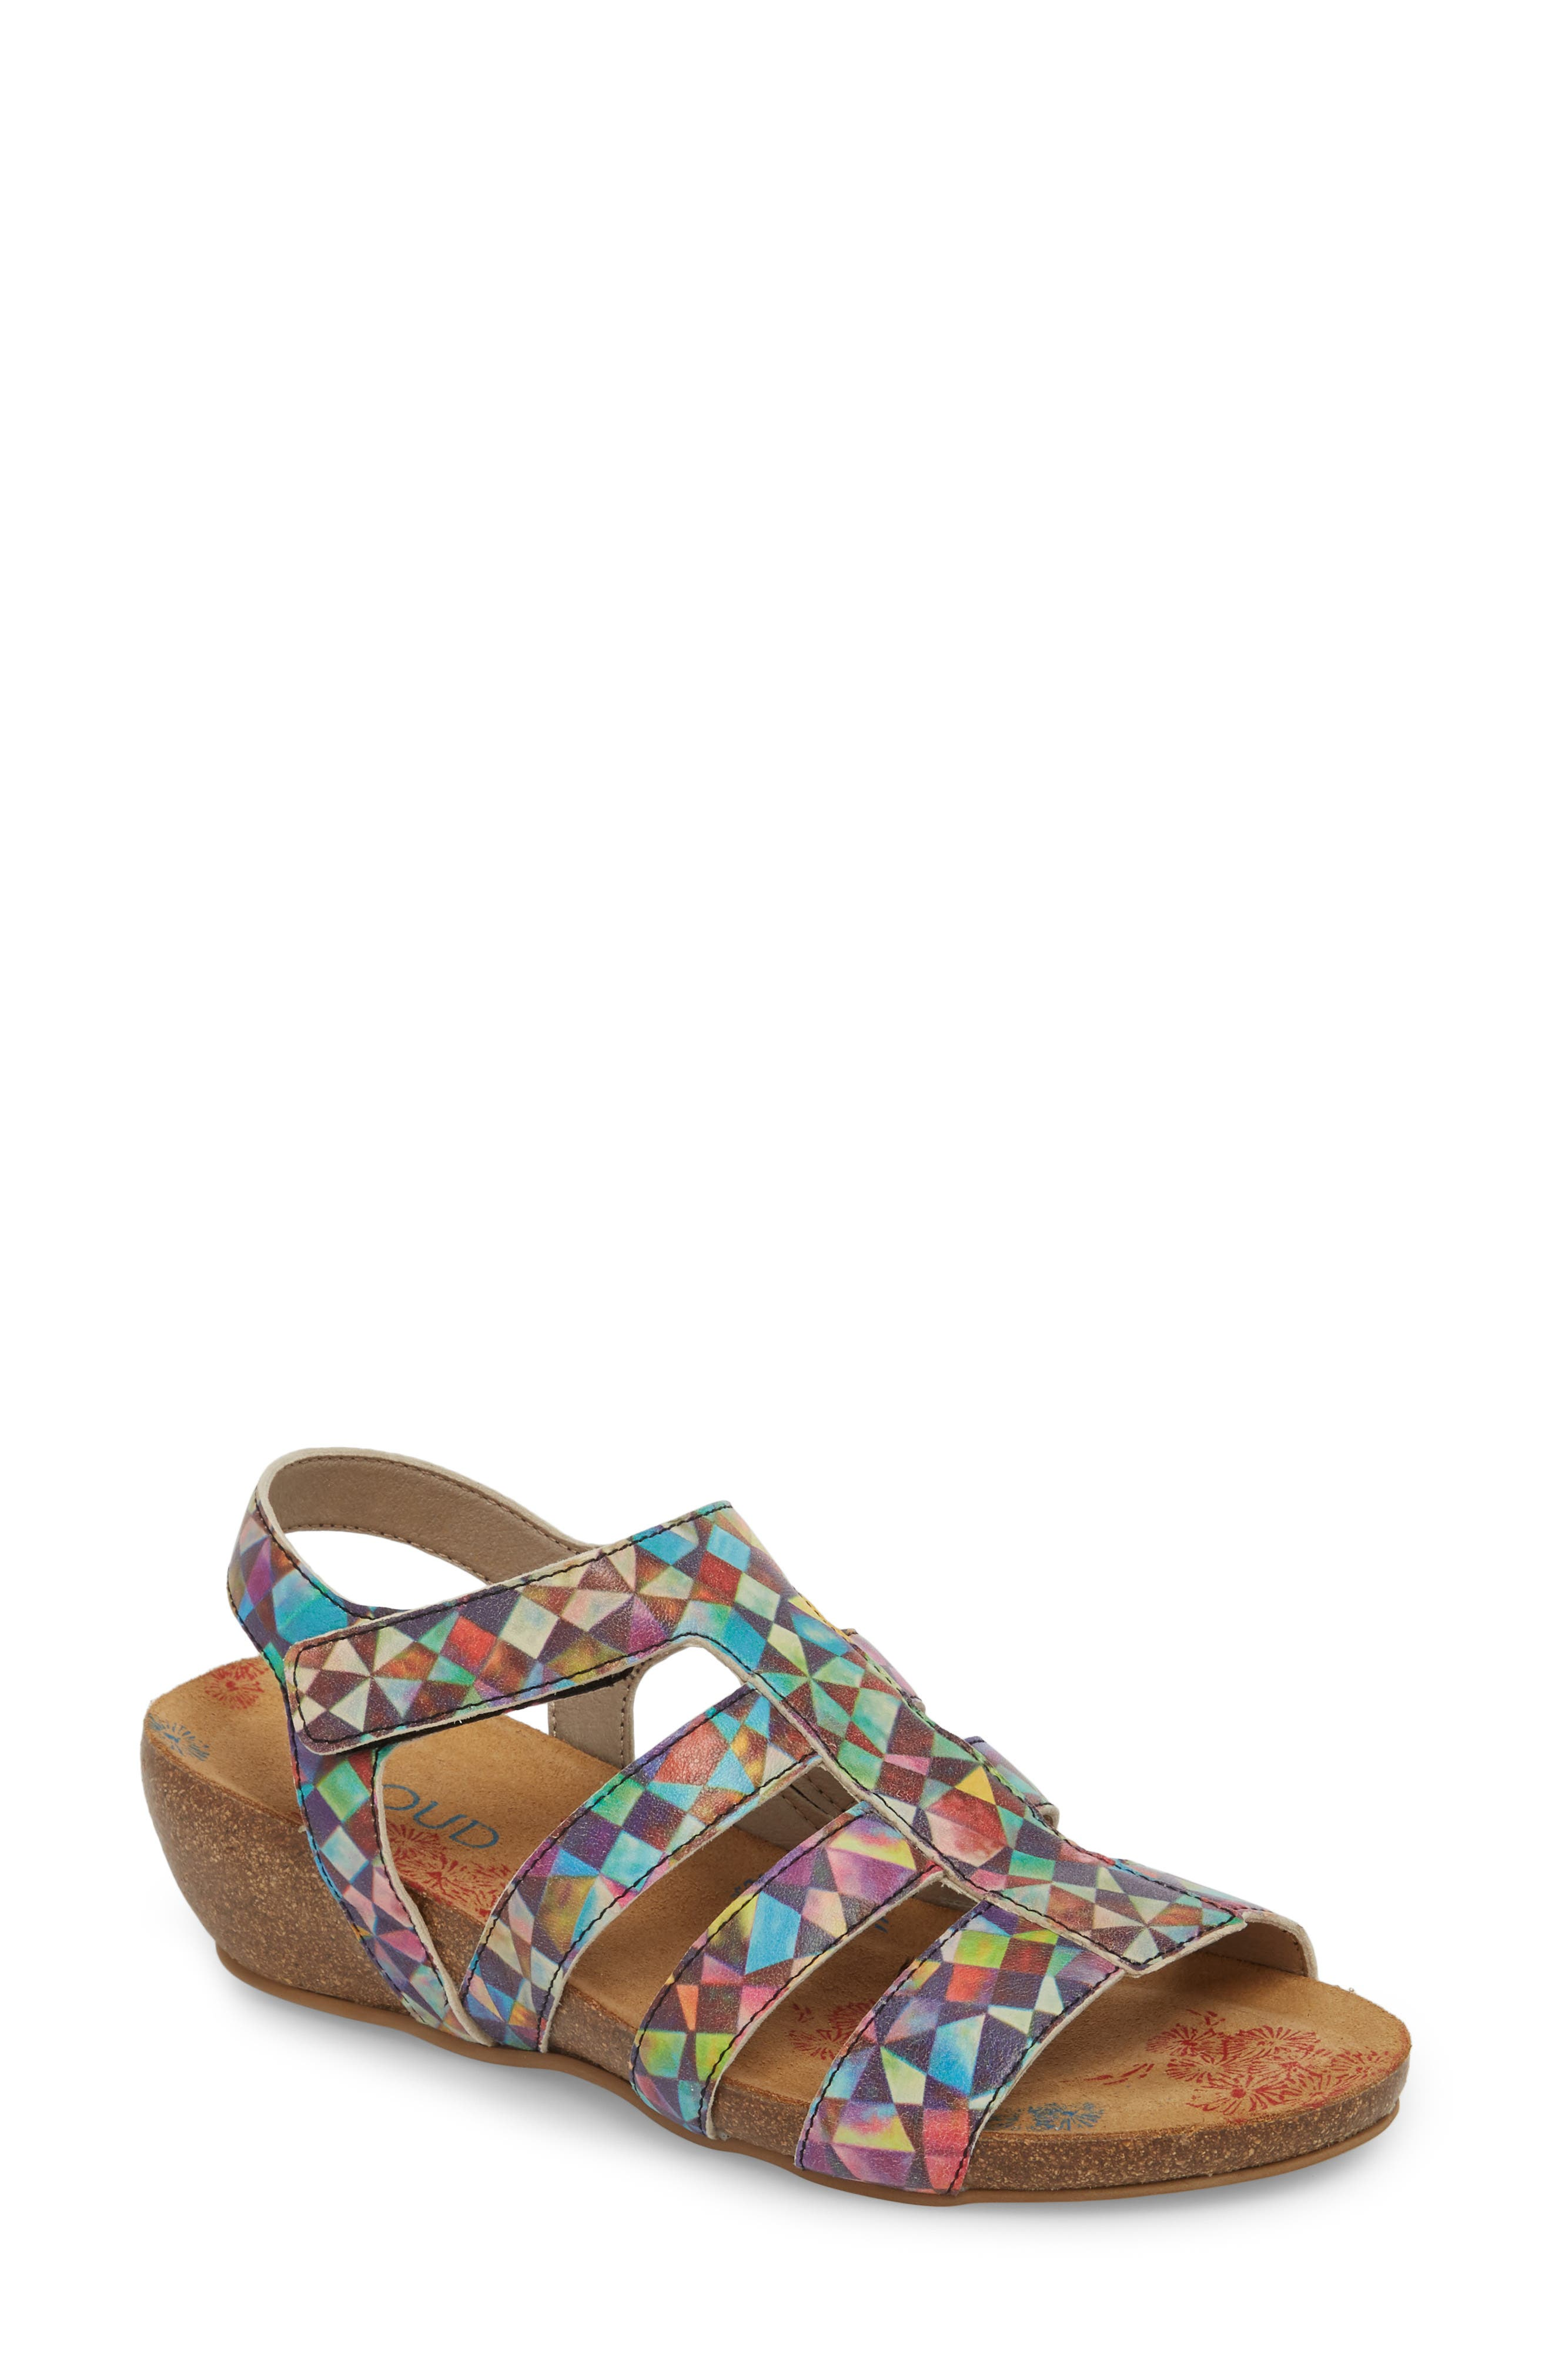 Delta Wedge Sandal,                             Main thumbnail 1, color,                             Mystere Leather